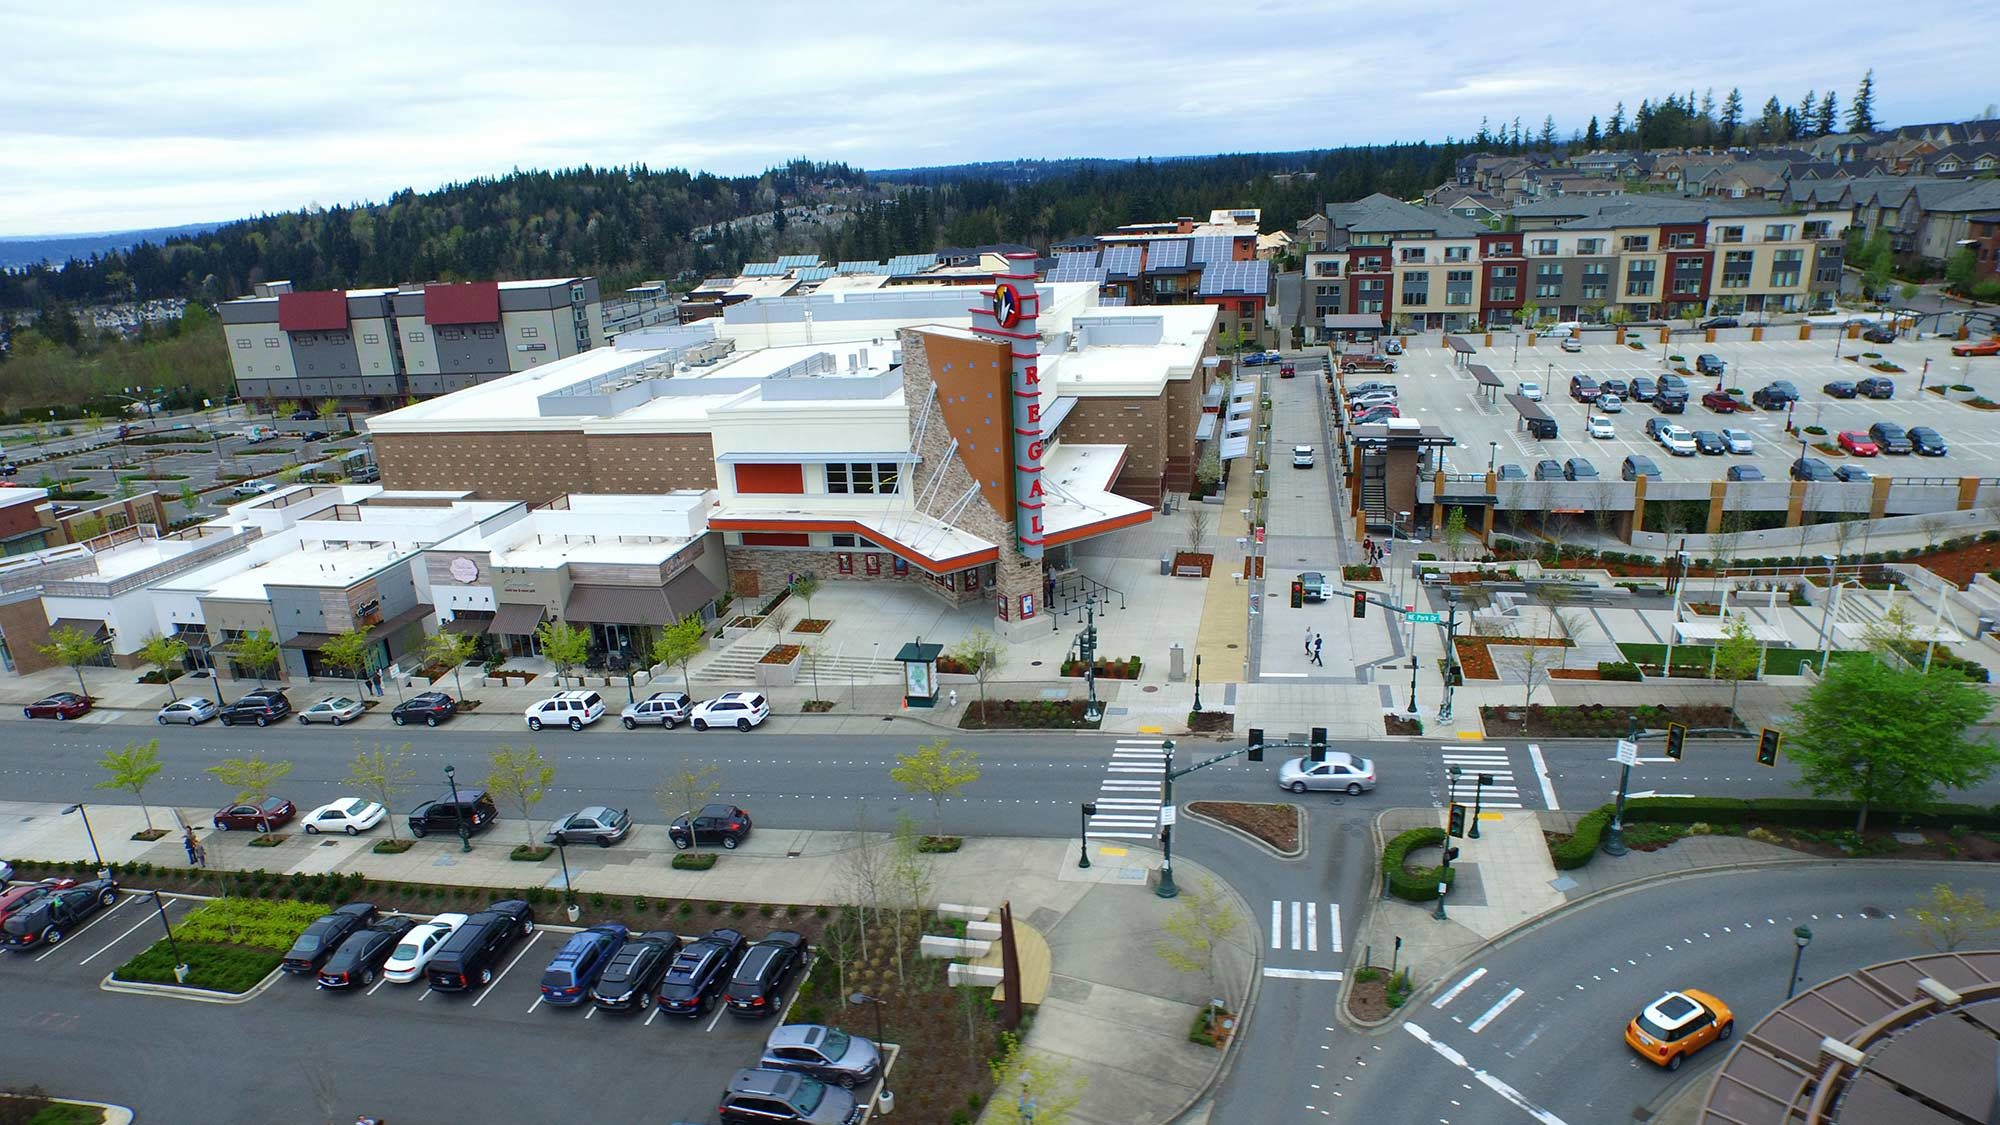 Regal Theaters – Grand Ridge Plaza Issaquah, Washington